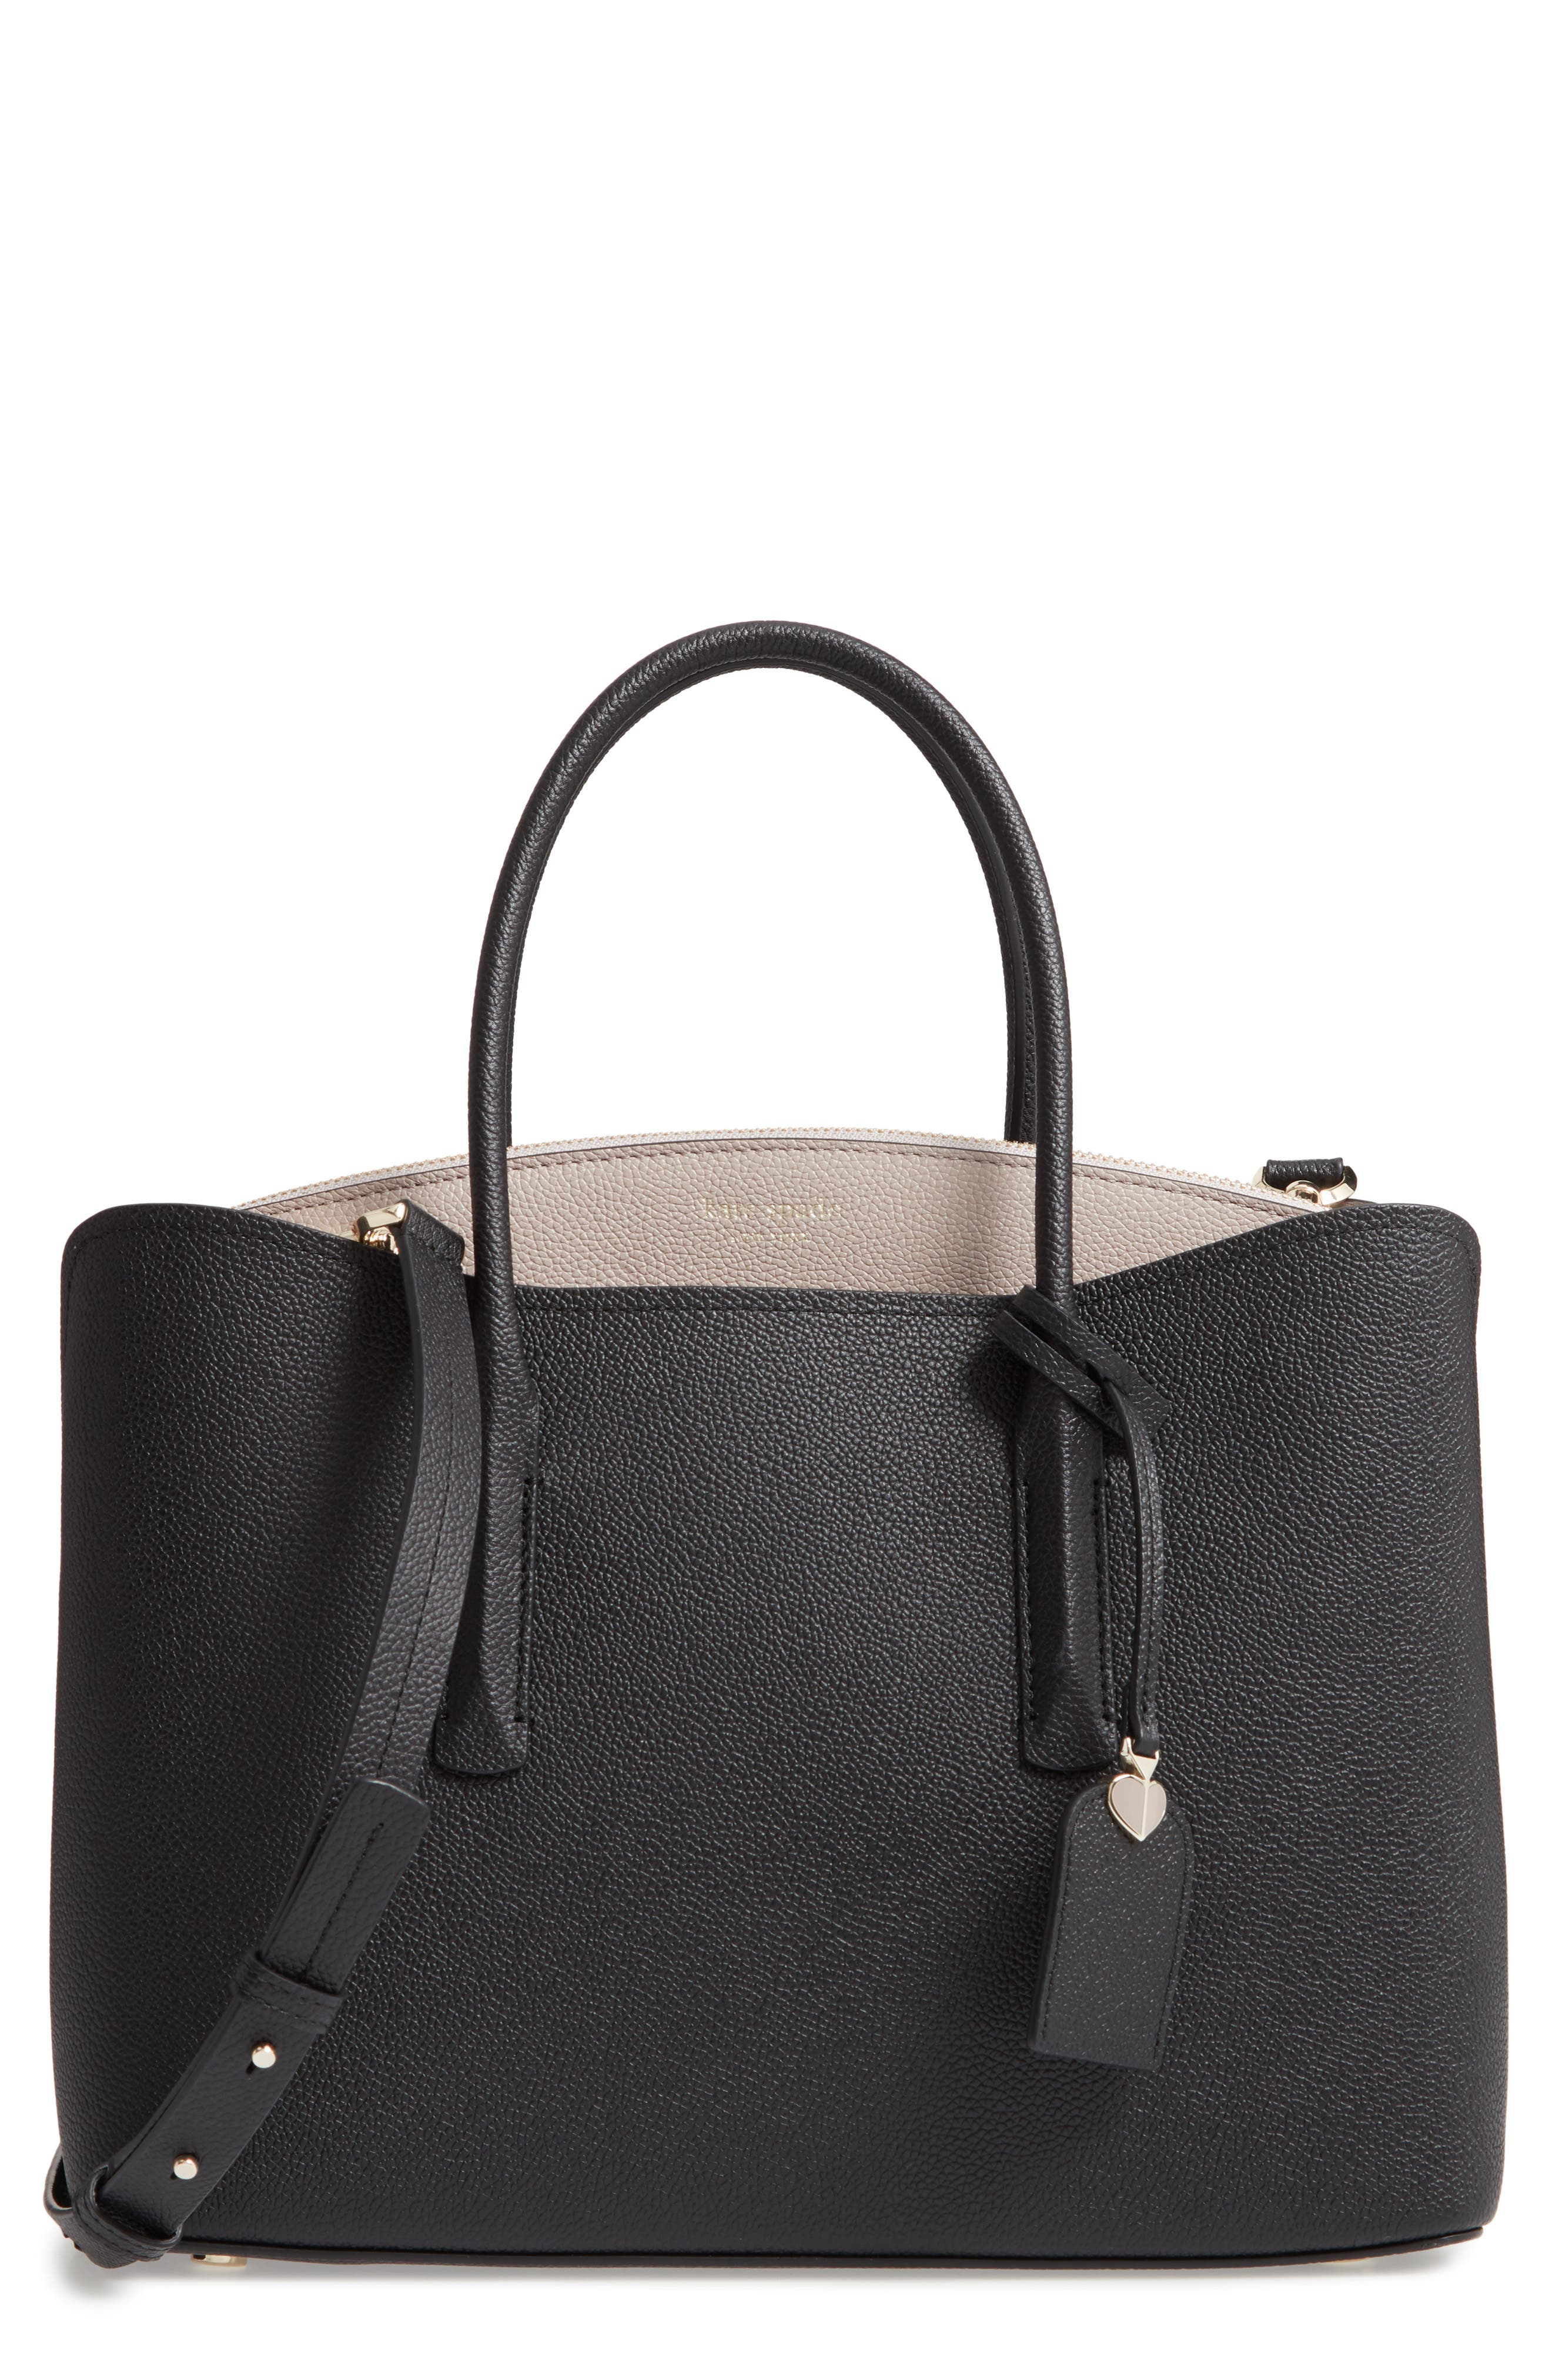 KATE SPADE NEW YORK large margaux leather satchel, Main, color, BLACK/ WARM TAUPE